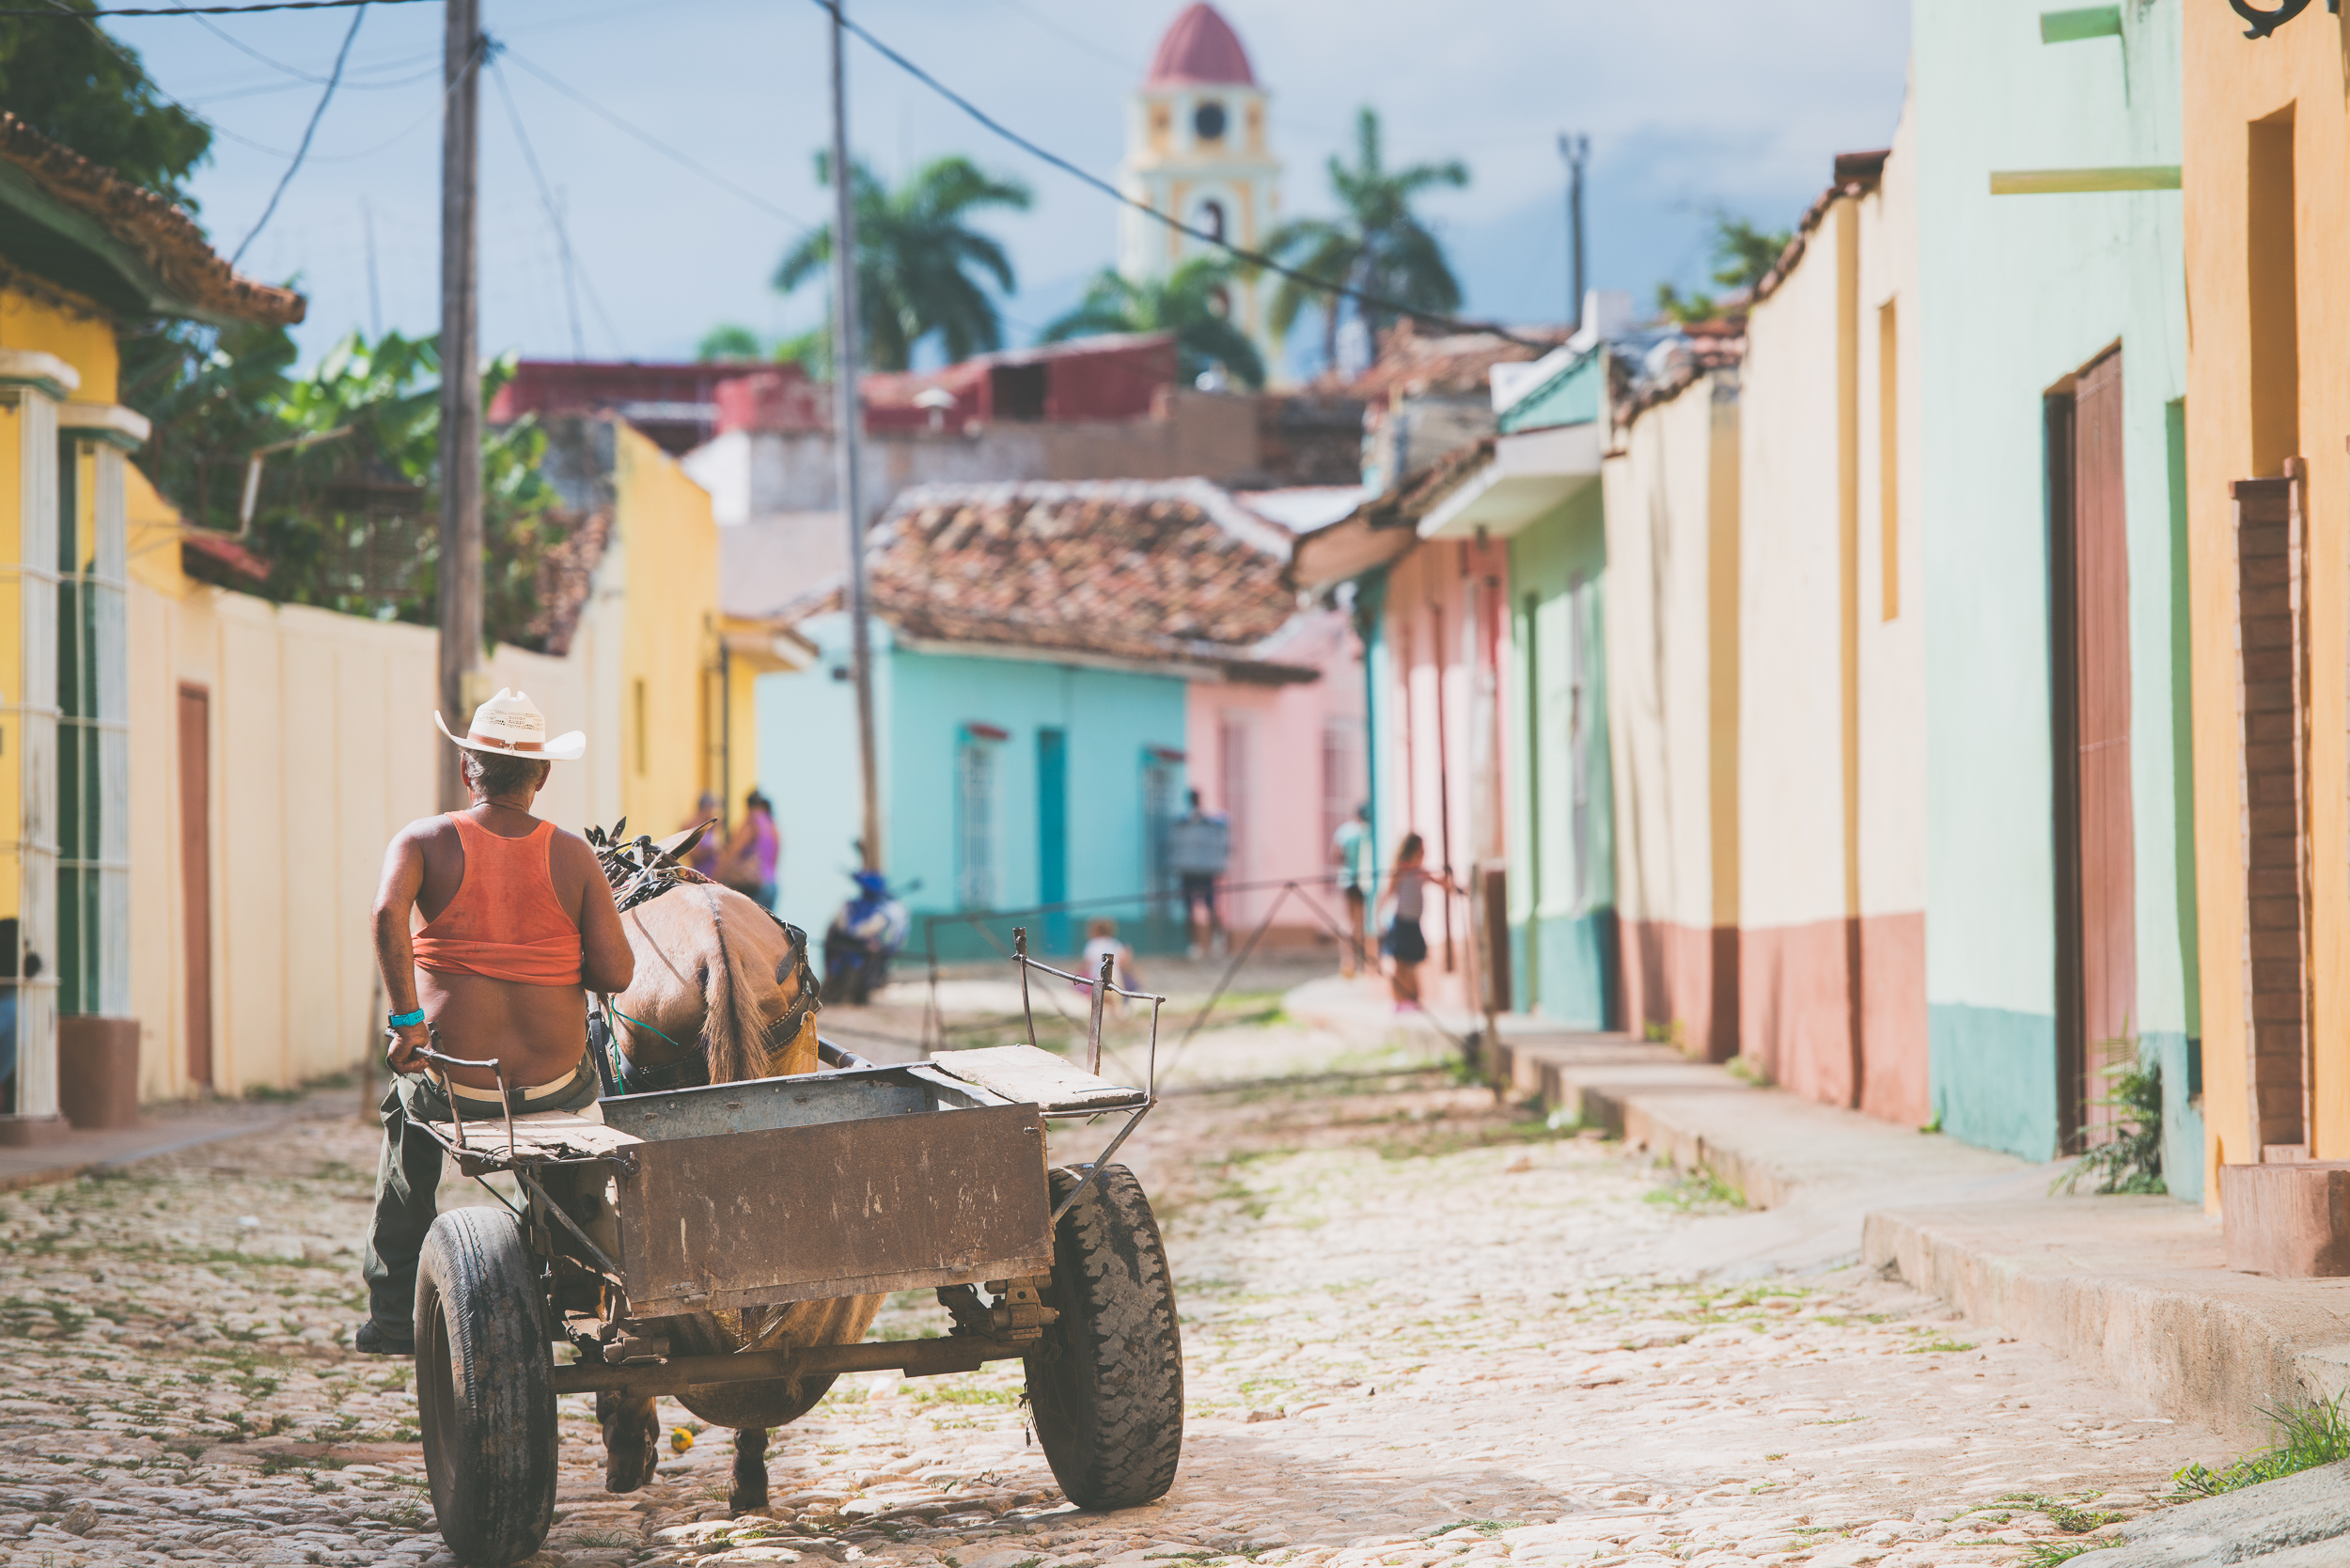 Horse and cart in Cuba - Travel - Photo credit Nicola Bailey.jpg